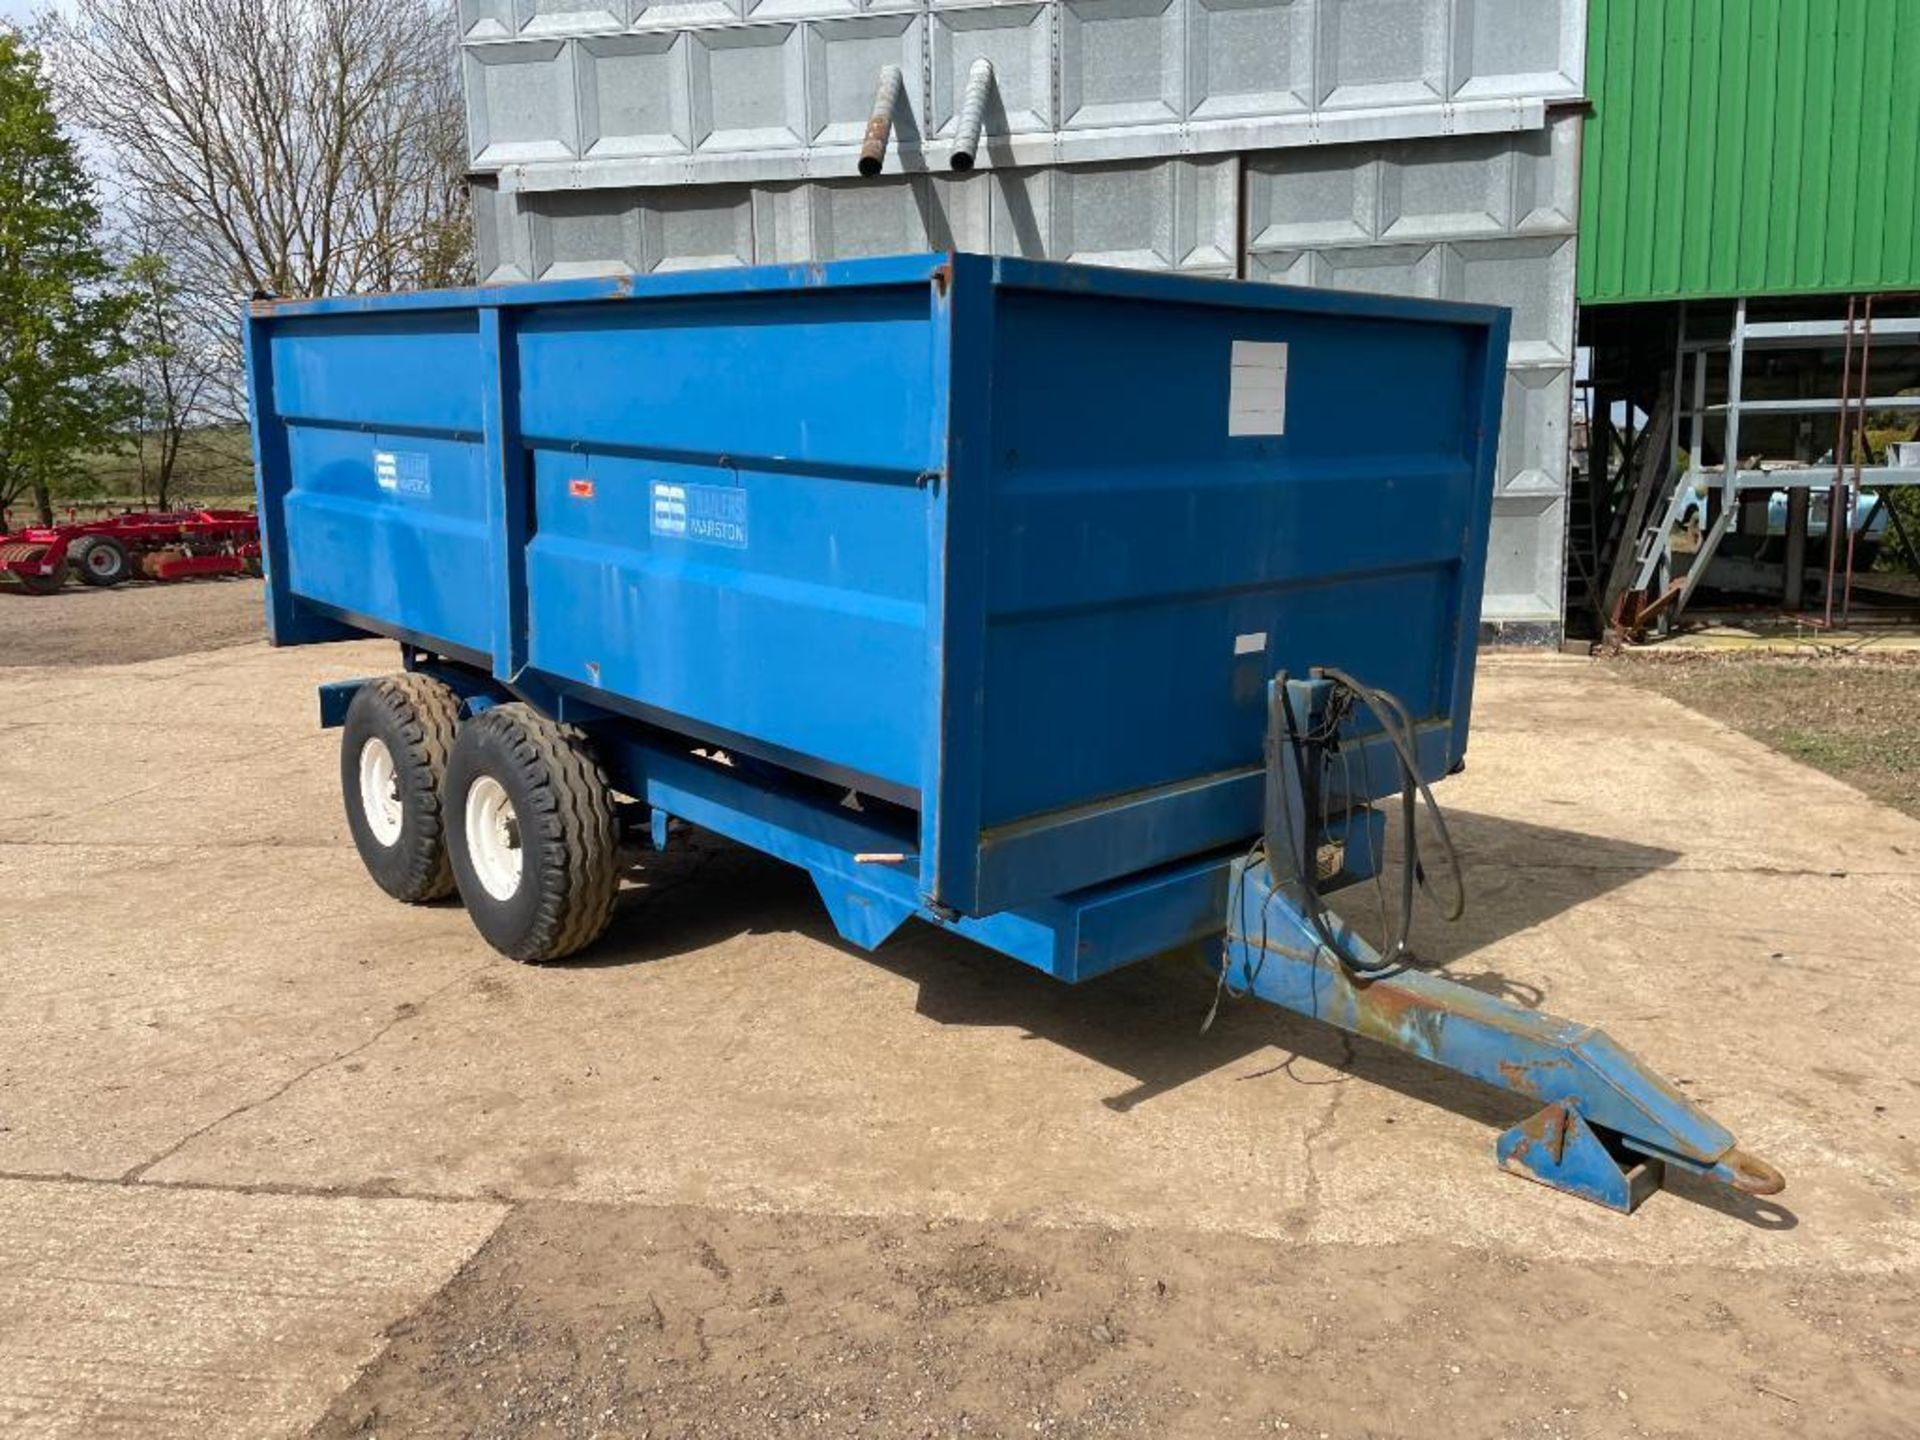 1986 AS Marston 8t twin axle grain trailer, manual tailgate and grain chute on 12.5/80-15.3 wheels a - Image 3 of 14